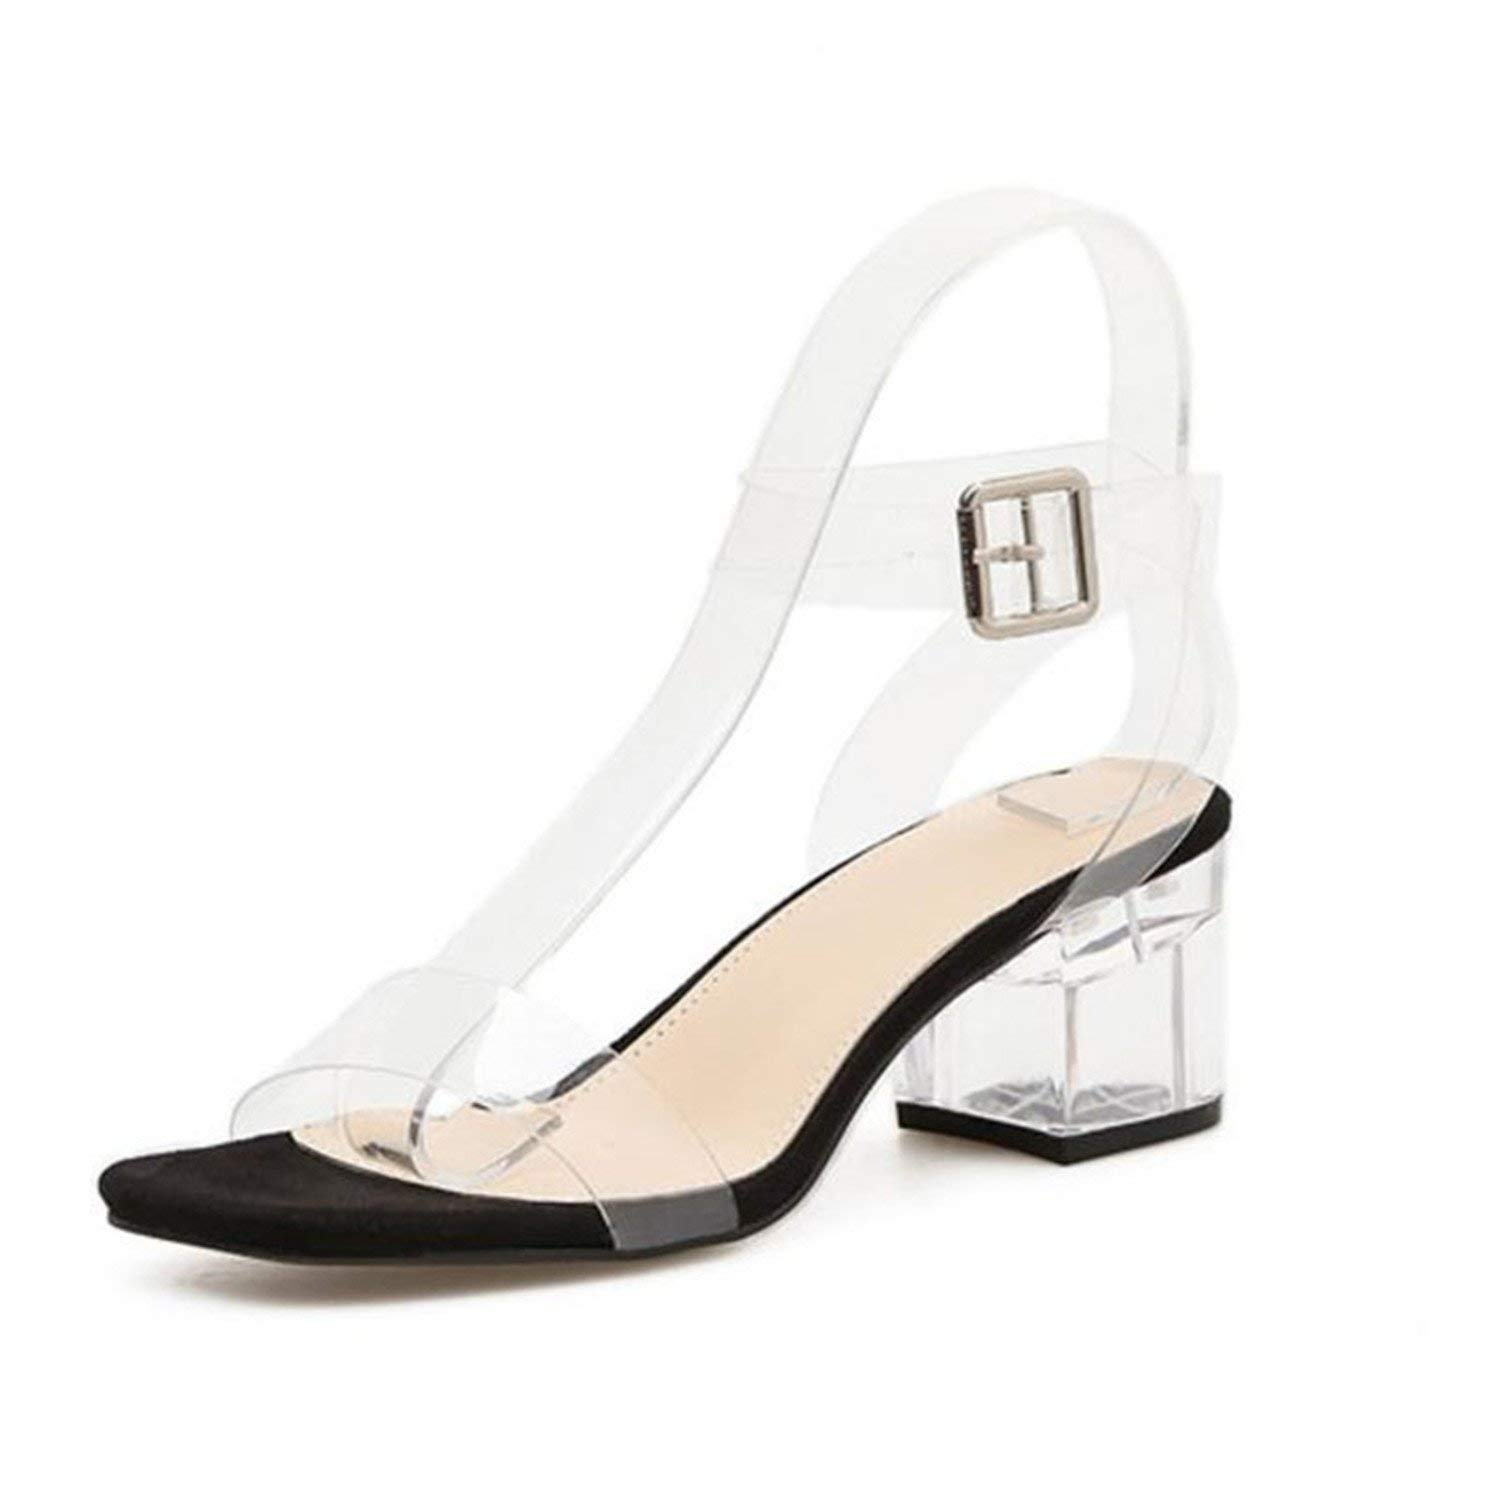 Get Quotations · Huntty Women s Shoes Transparent Sandals Clear Heels for Women  Shoes Jelly 9a96403326ee